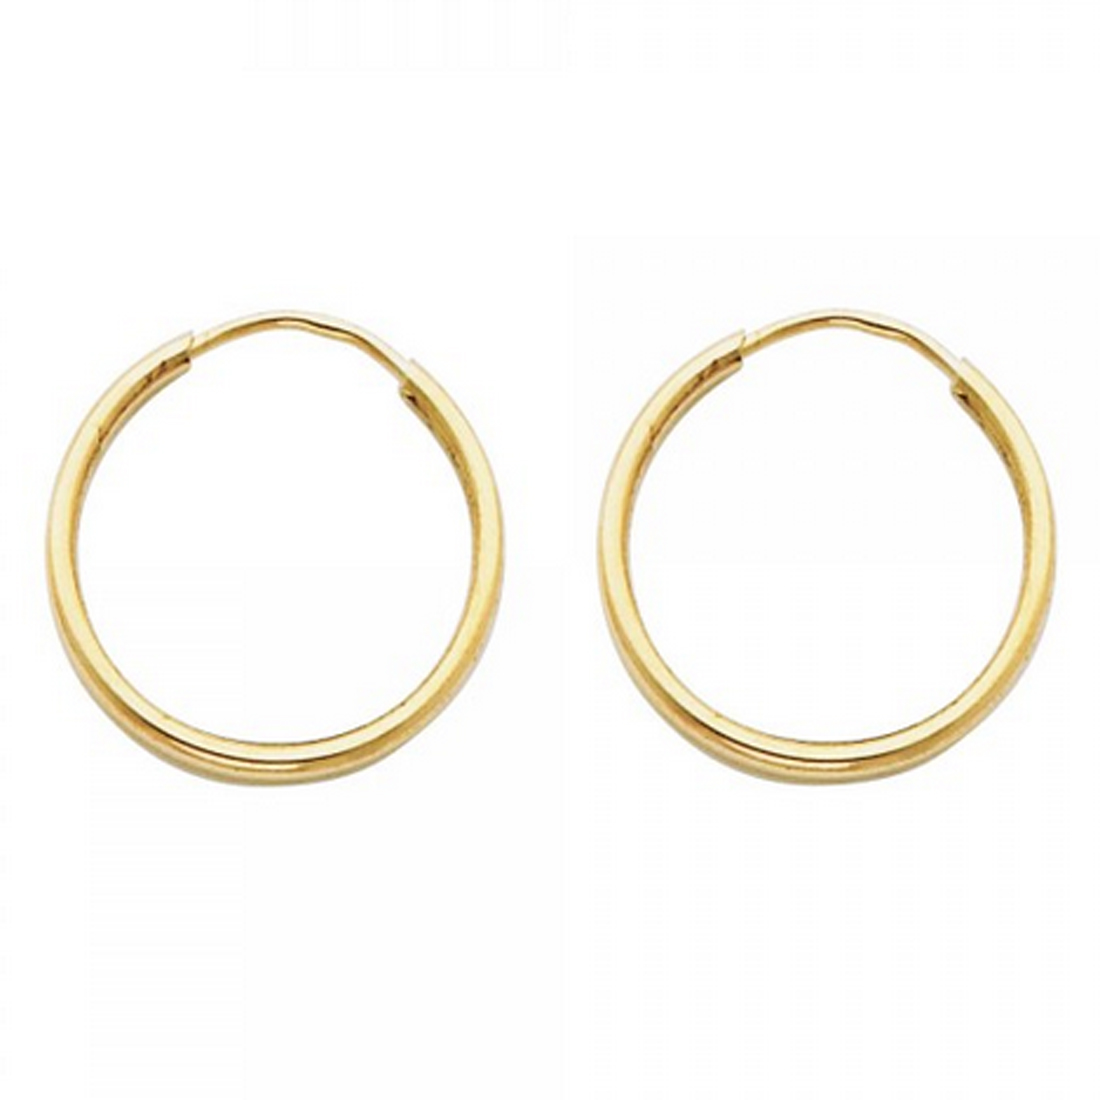 14K Yellow Gold Polished 11mm Round Endless Hoop Earrings